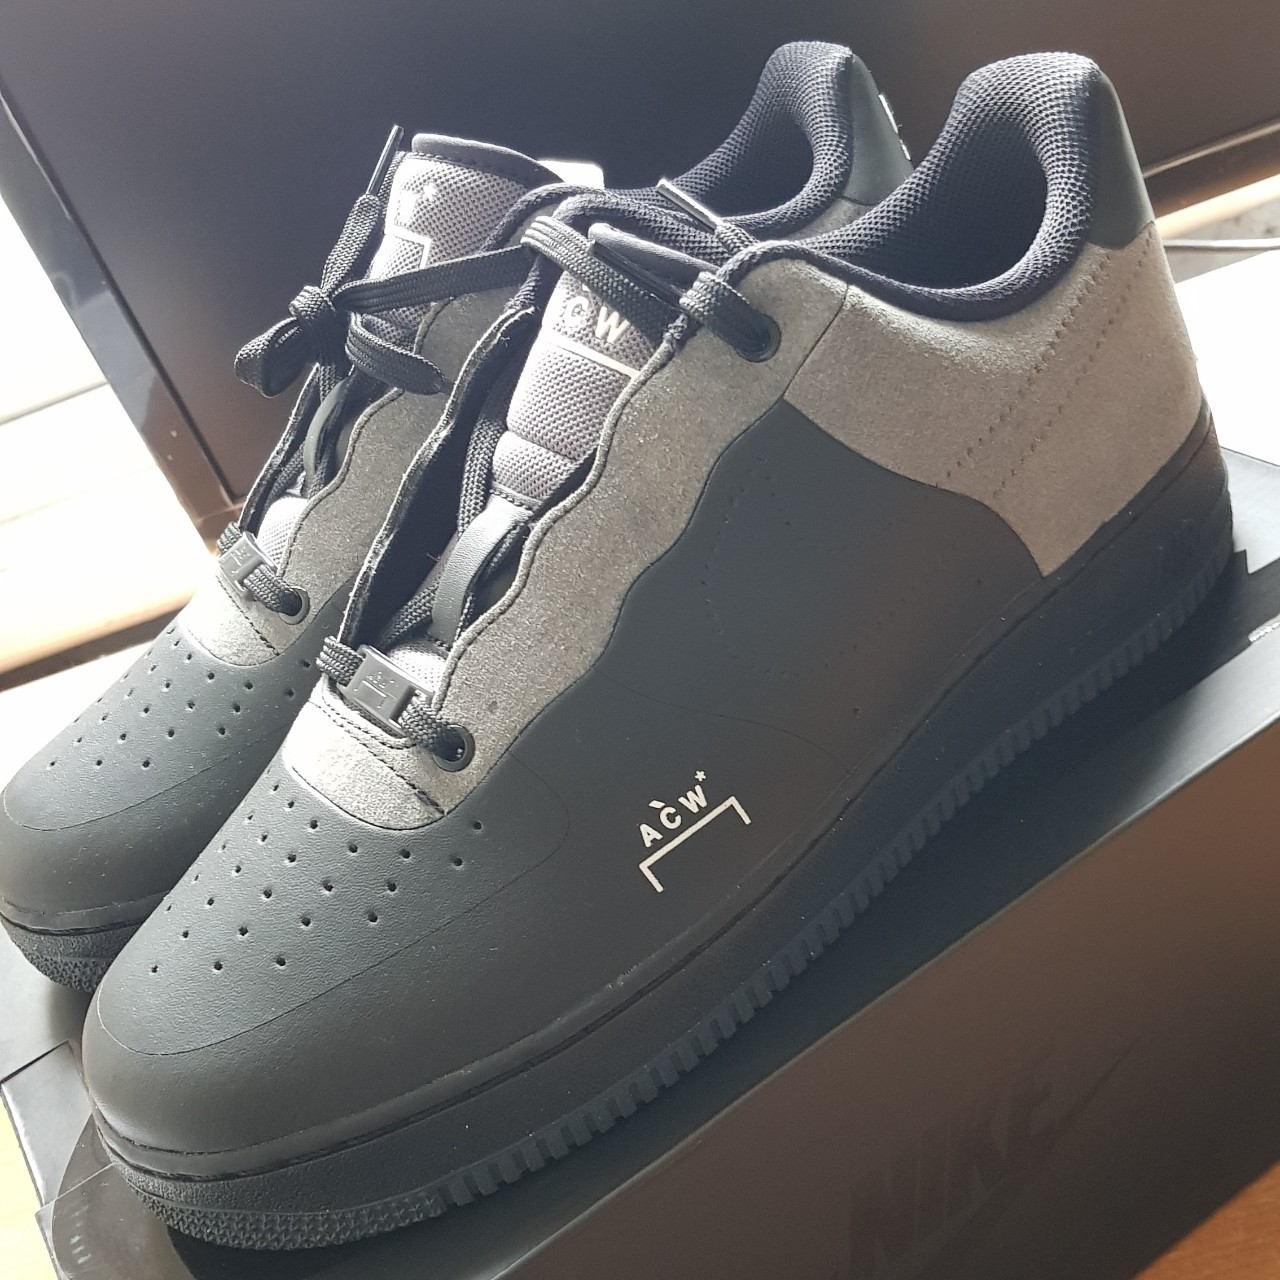 A-COLD-WALL* Nike Air Force 1 ACW AF1